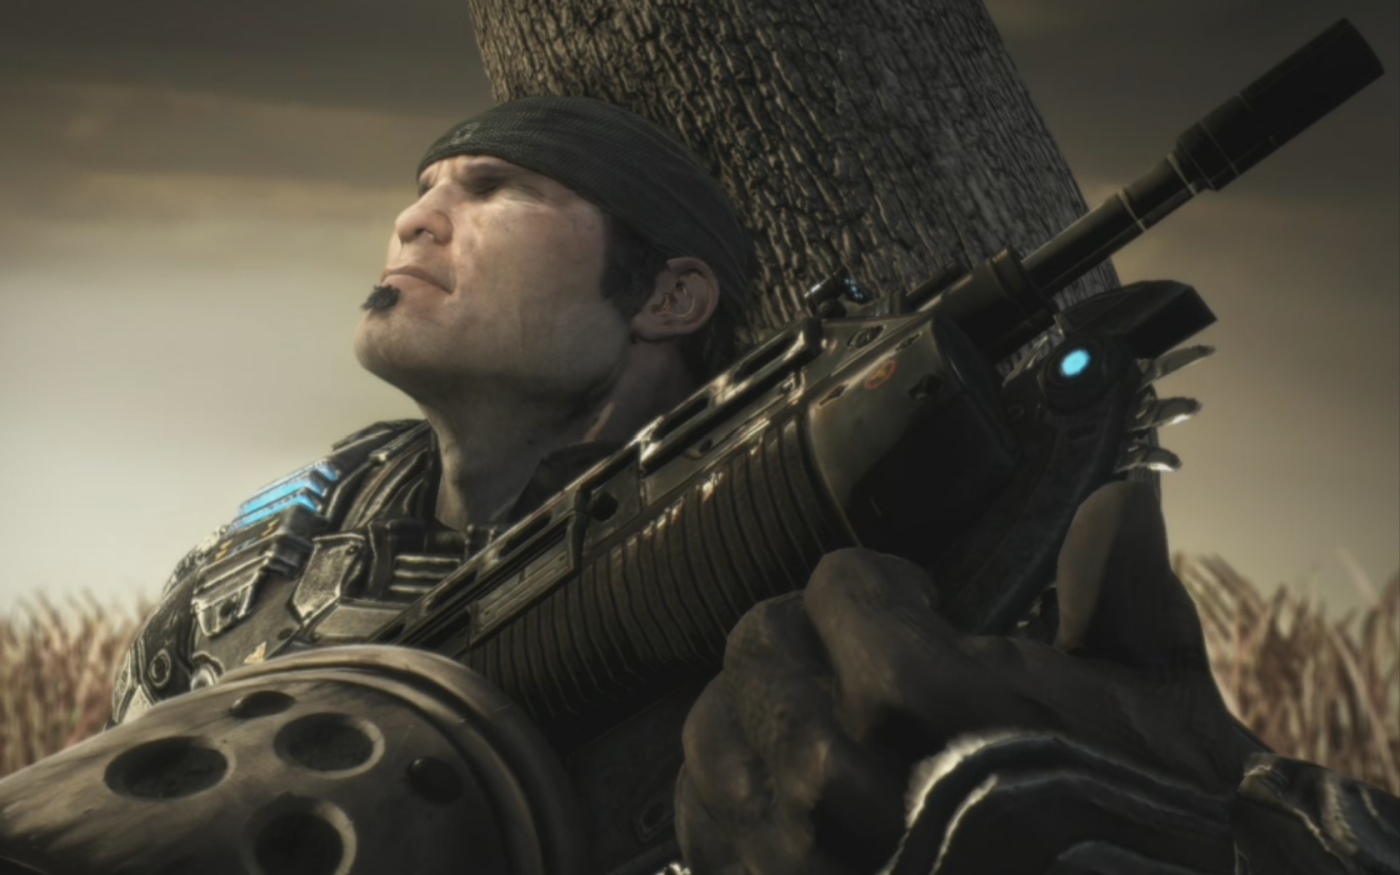 película de Gears of War